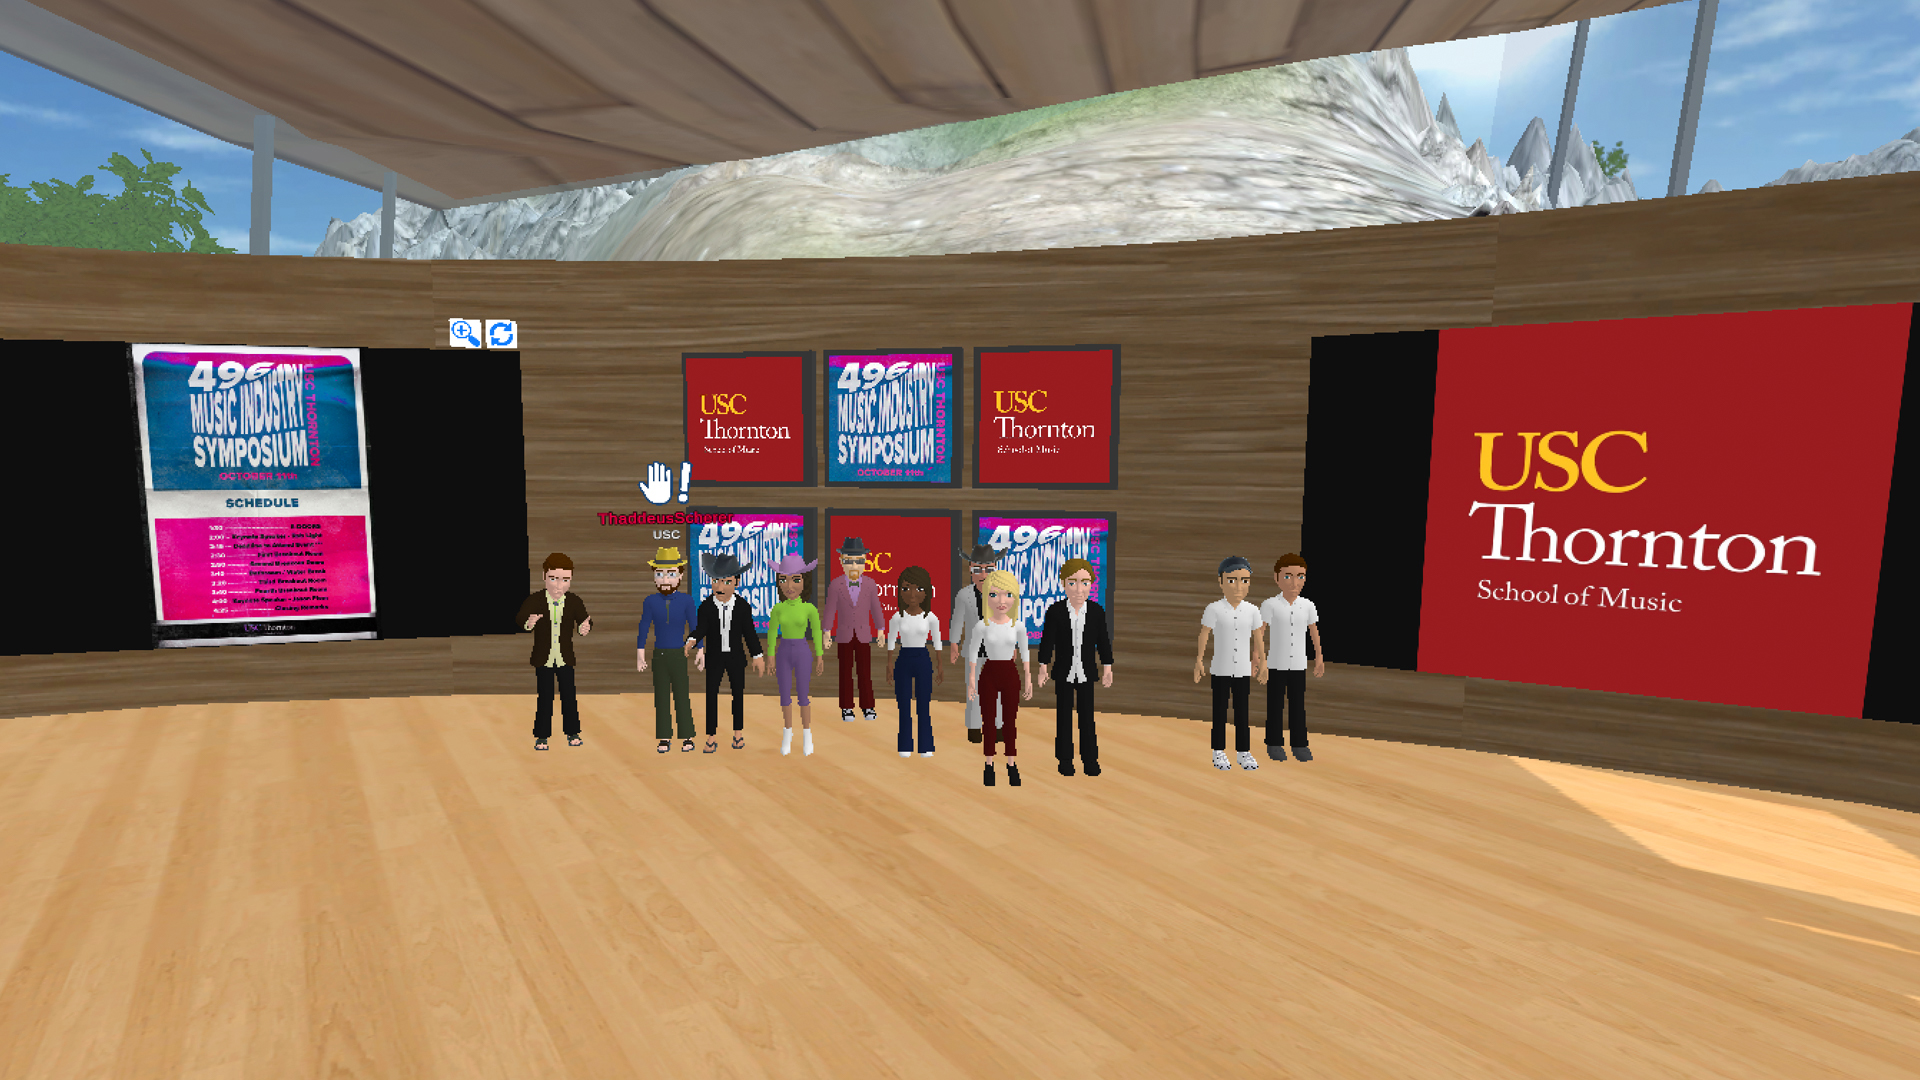 A group of animated avatars stand in a virtual space with animated screens showing the USC Thornton logo